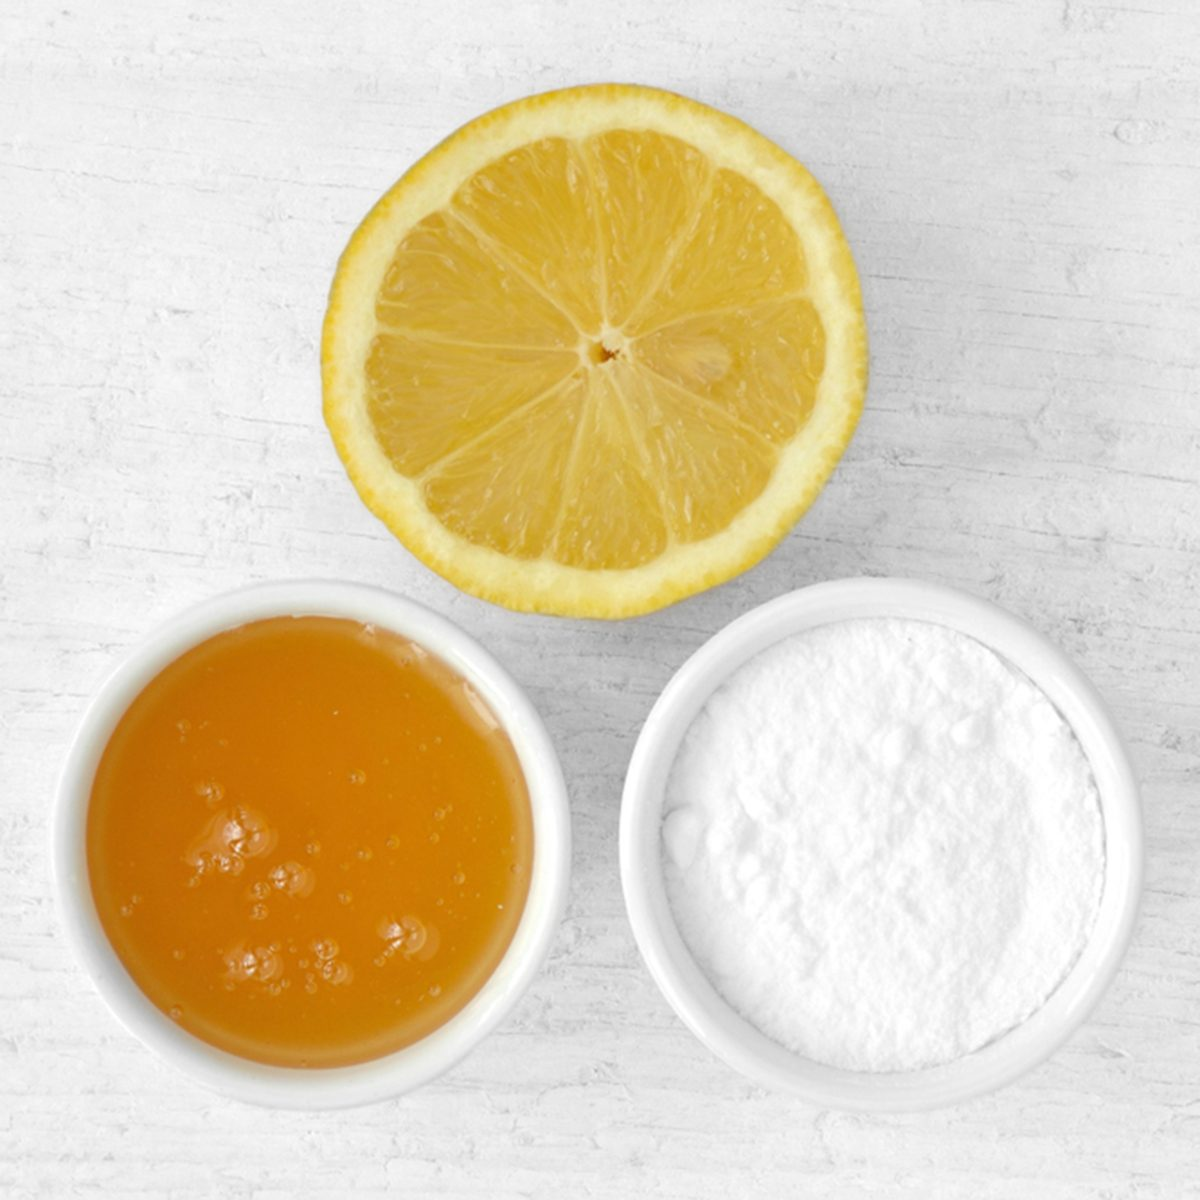 Homemade face mask made out of lemon juice, honey and baking soda on wooden background